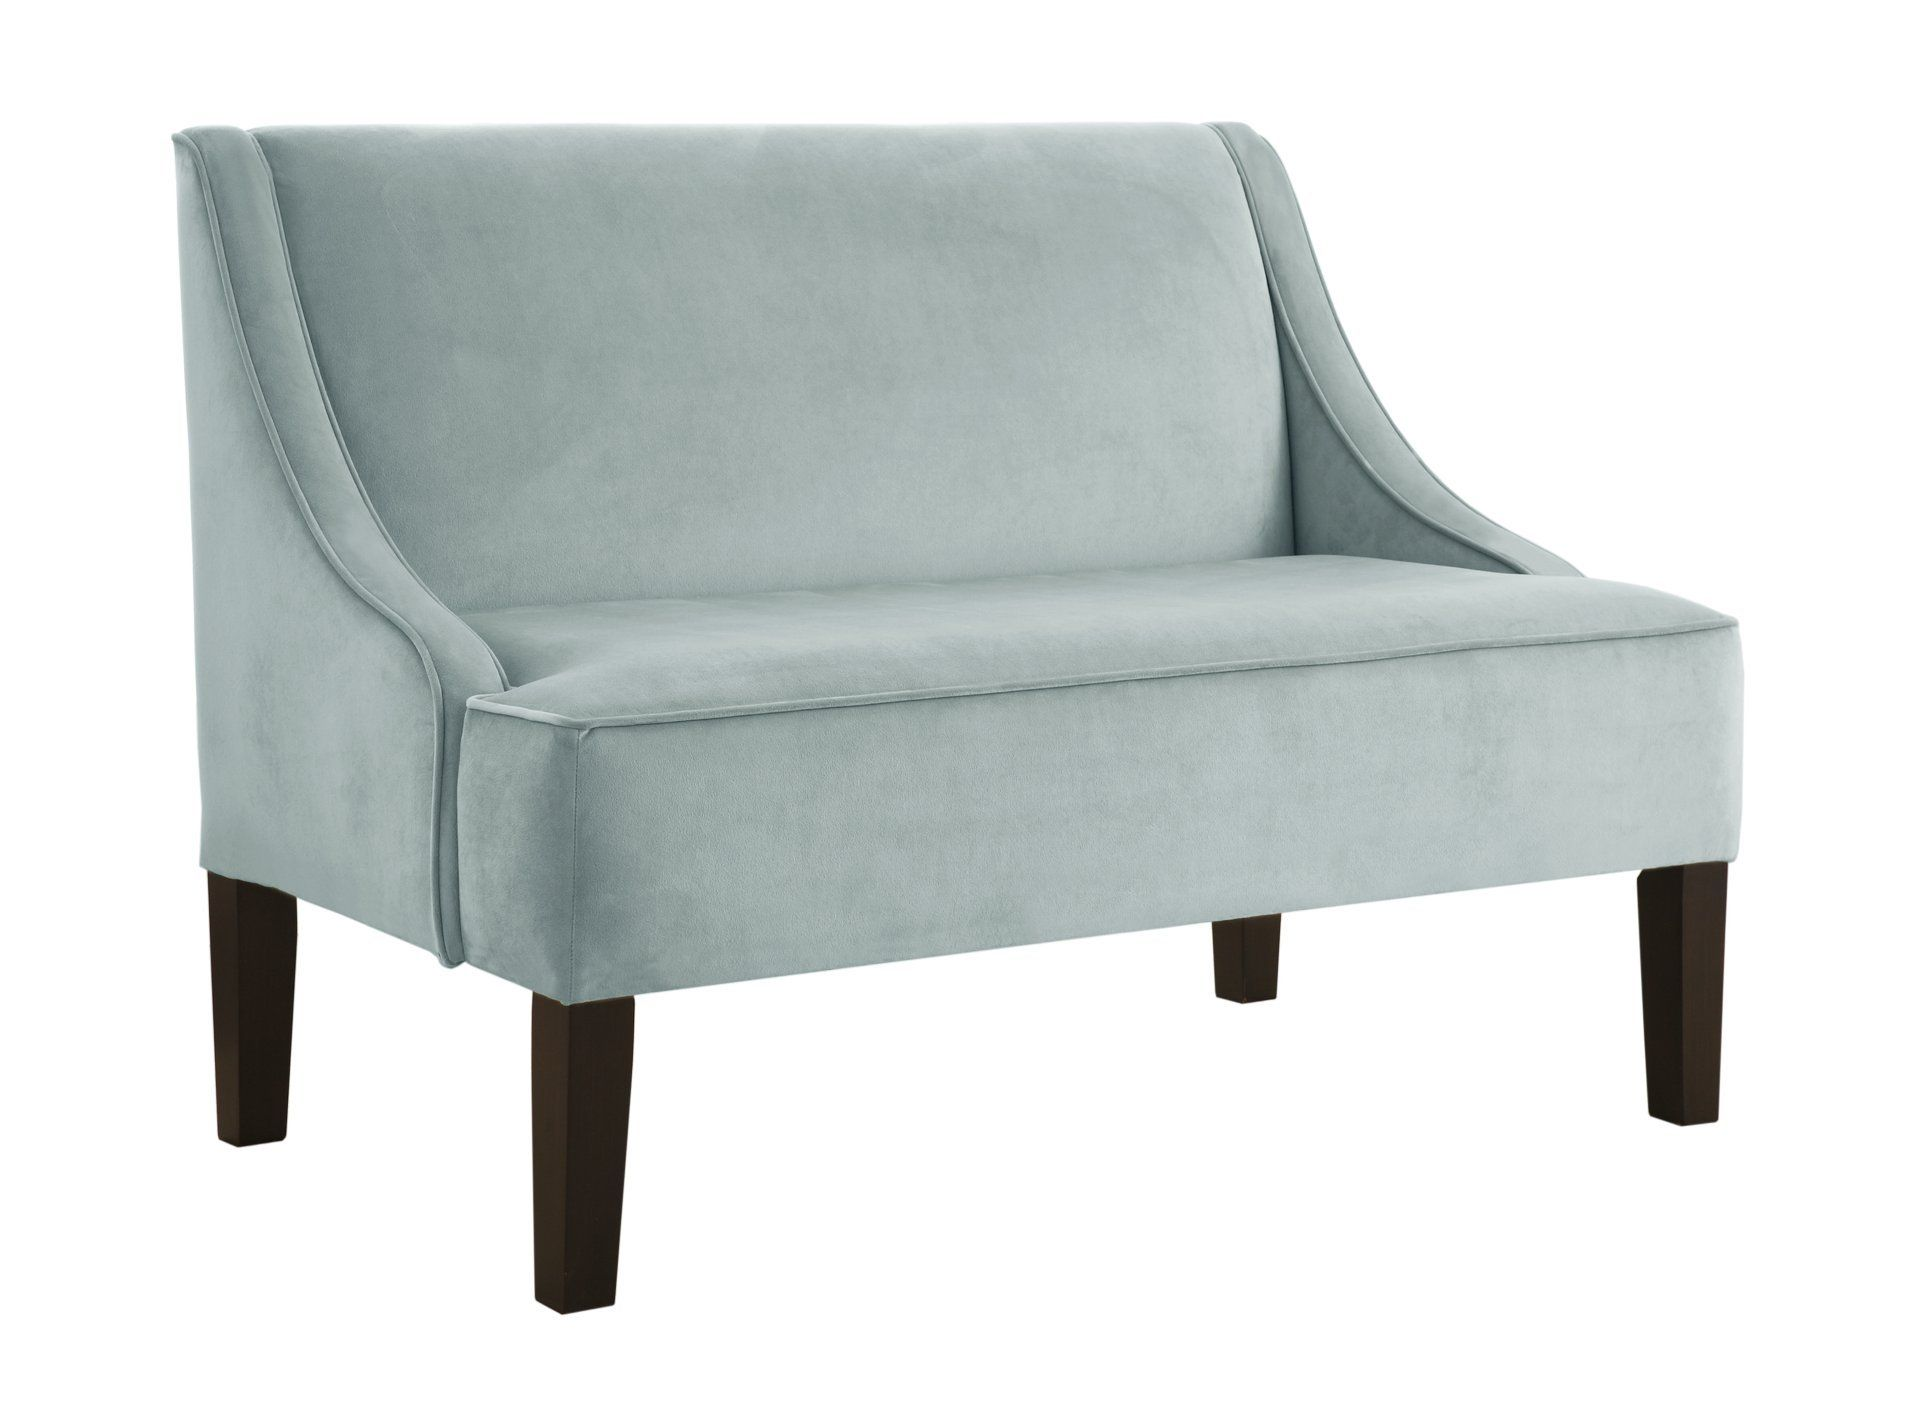 Skyline Furniture Swoop Arm Settee in Velvet Pool